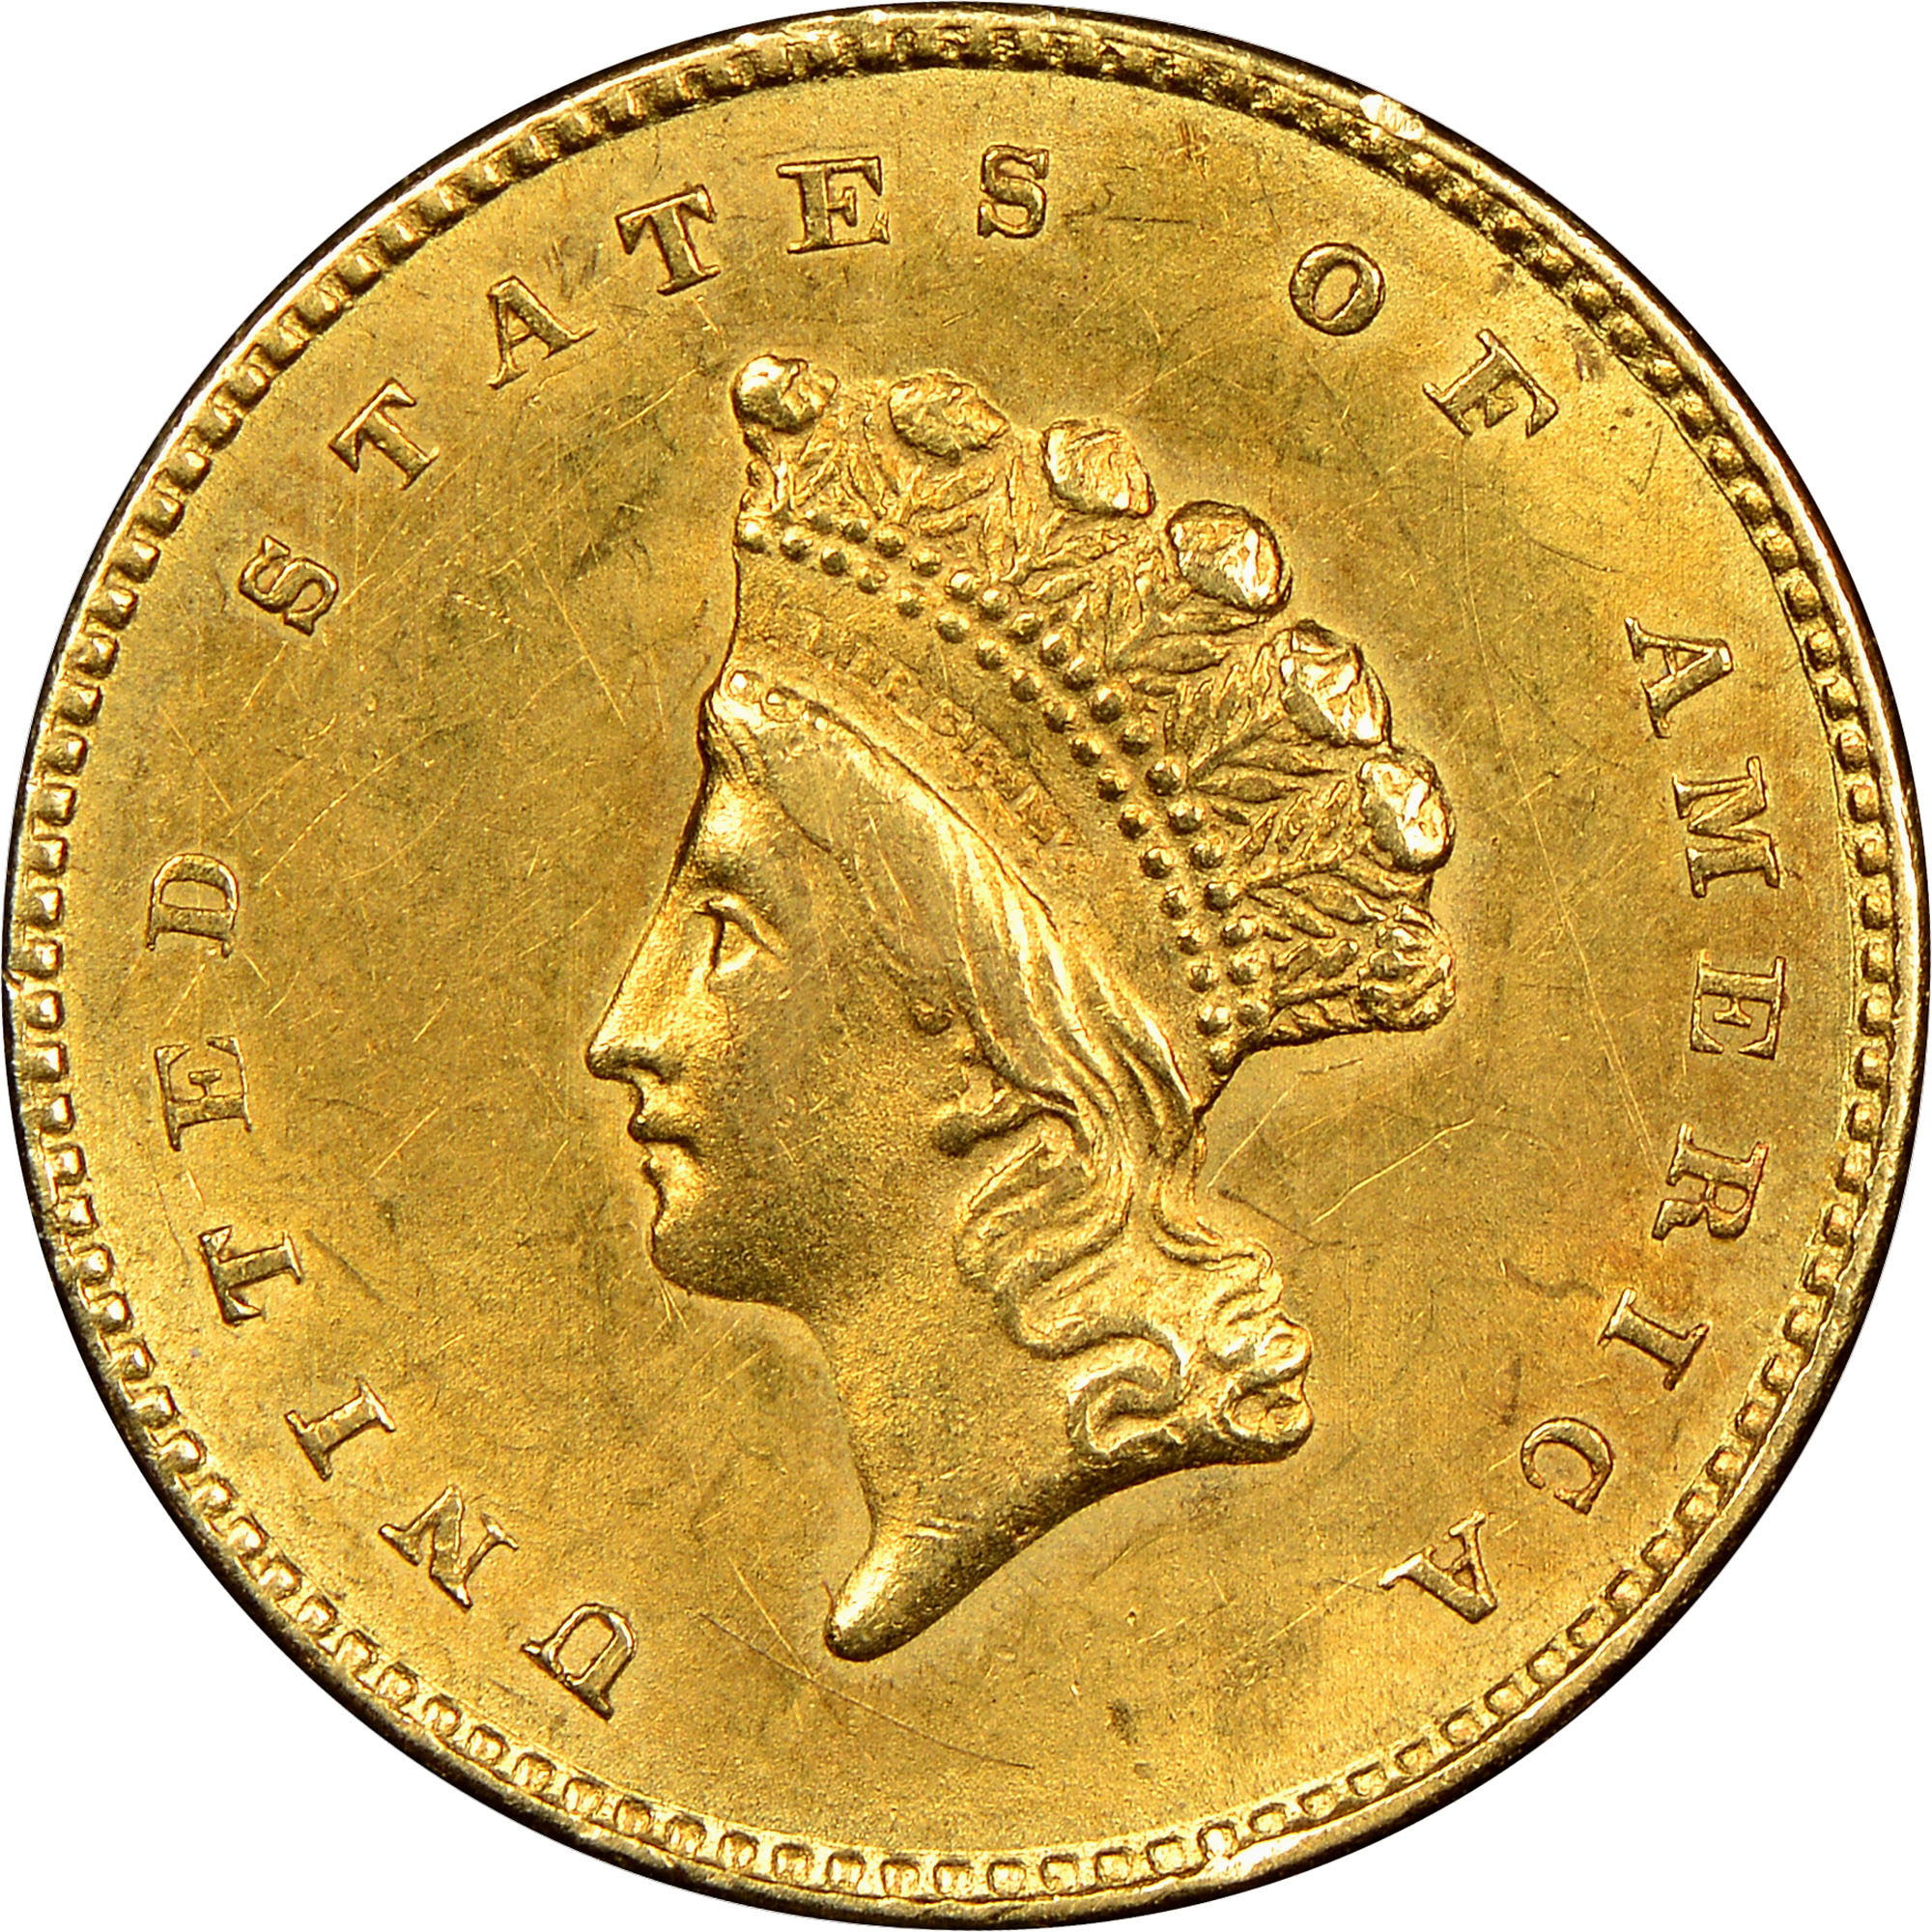 G 1 Ms Gold Dollars